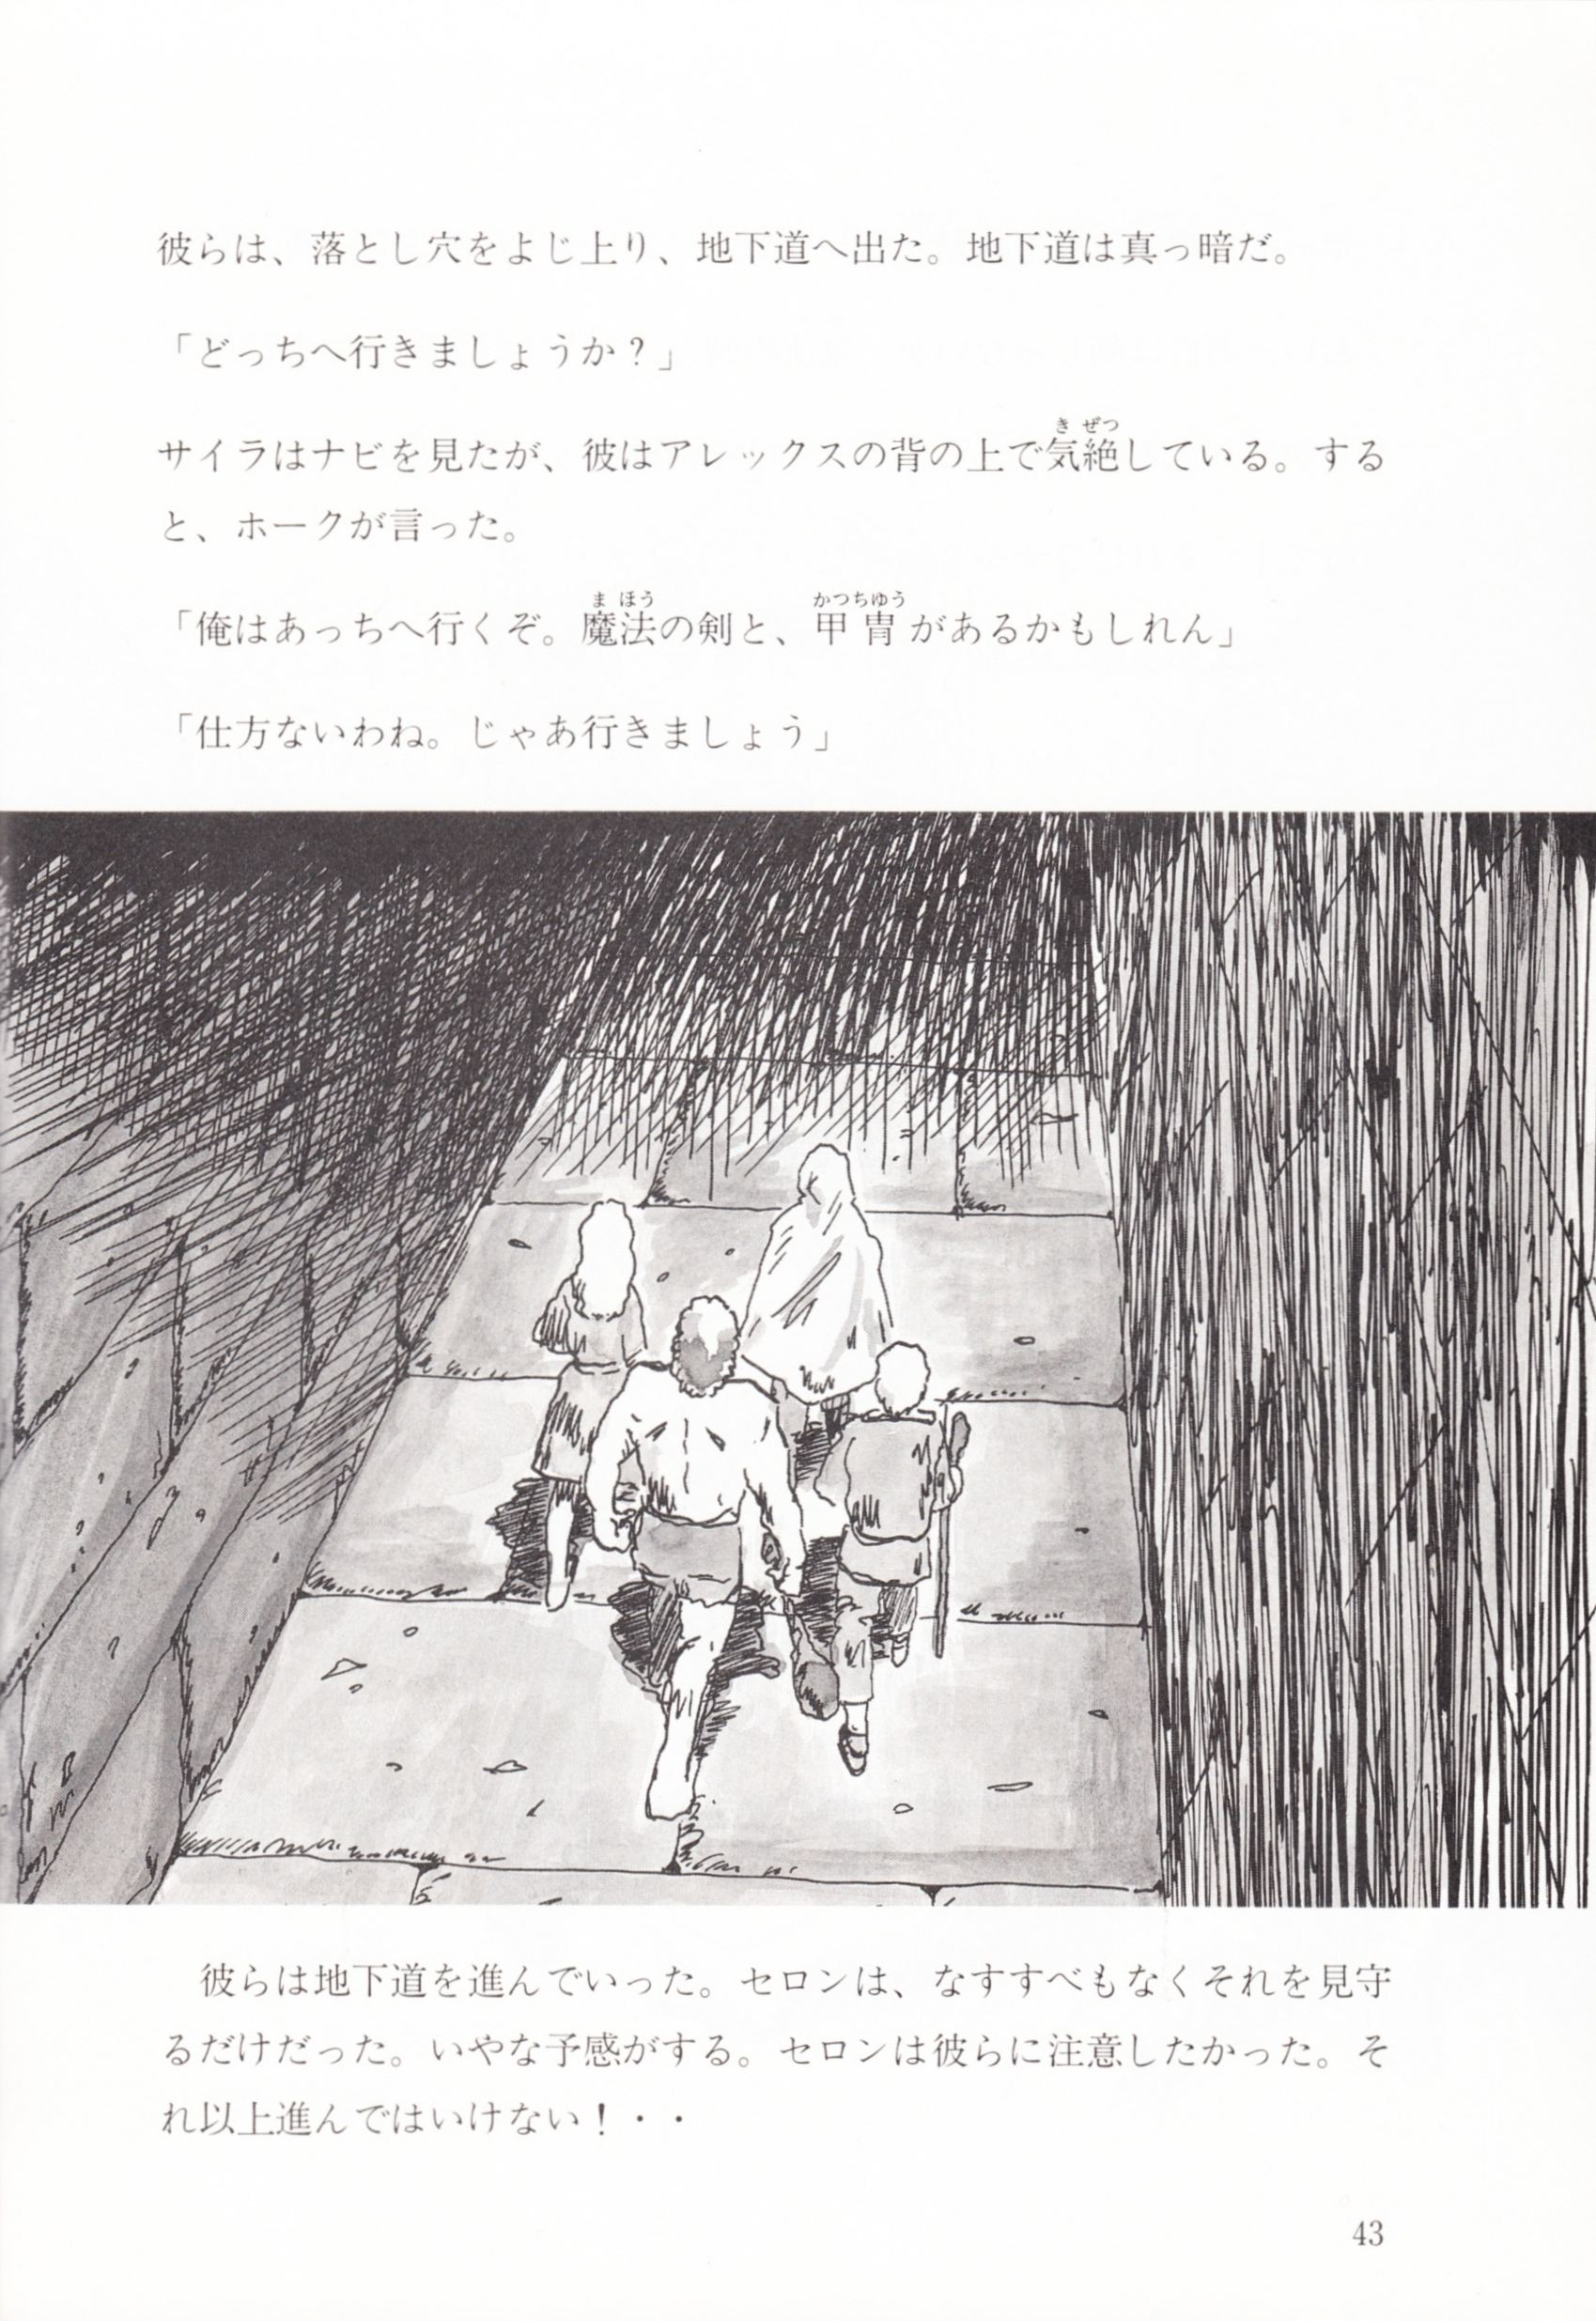 Game - Dungeon Master - JP - FM Towns - Story Guide - Page 045 - Scan